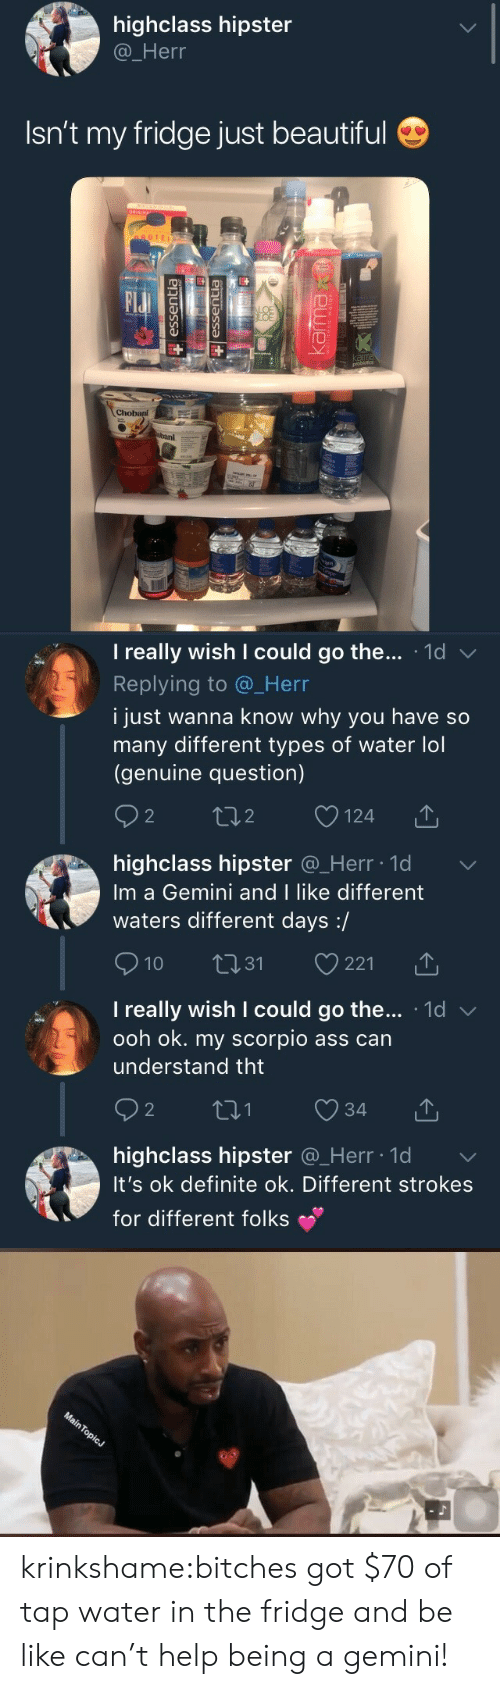 A Gemini: highclass hipster  @_Herr  Isn't my fridge just beautiful  OTEI  Elu  BAI   I really wish I could go the . 1d  Replying to @_Herr  i just wanna know why you have so  many different types of water lol  (genuine question)  2  o124  2  highclass hipster @_Herr ld  Im a Gemini and I like different  waters different days:/  10 31 221  I really wish I could go the... 1d v  ooh ok. my scorpio ass can  understand tht  2  highclass hipster Q_Herr lo  It's ok definite ok. Different strokes  for different folks krinkshame:bitches got $70 of tap water in the fridge and be like can't help being a gemini!